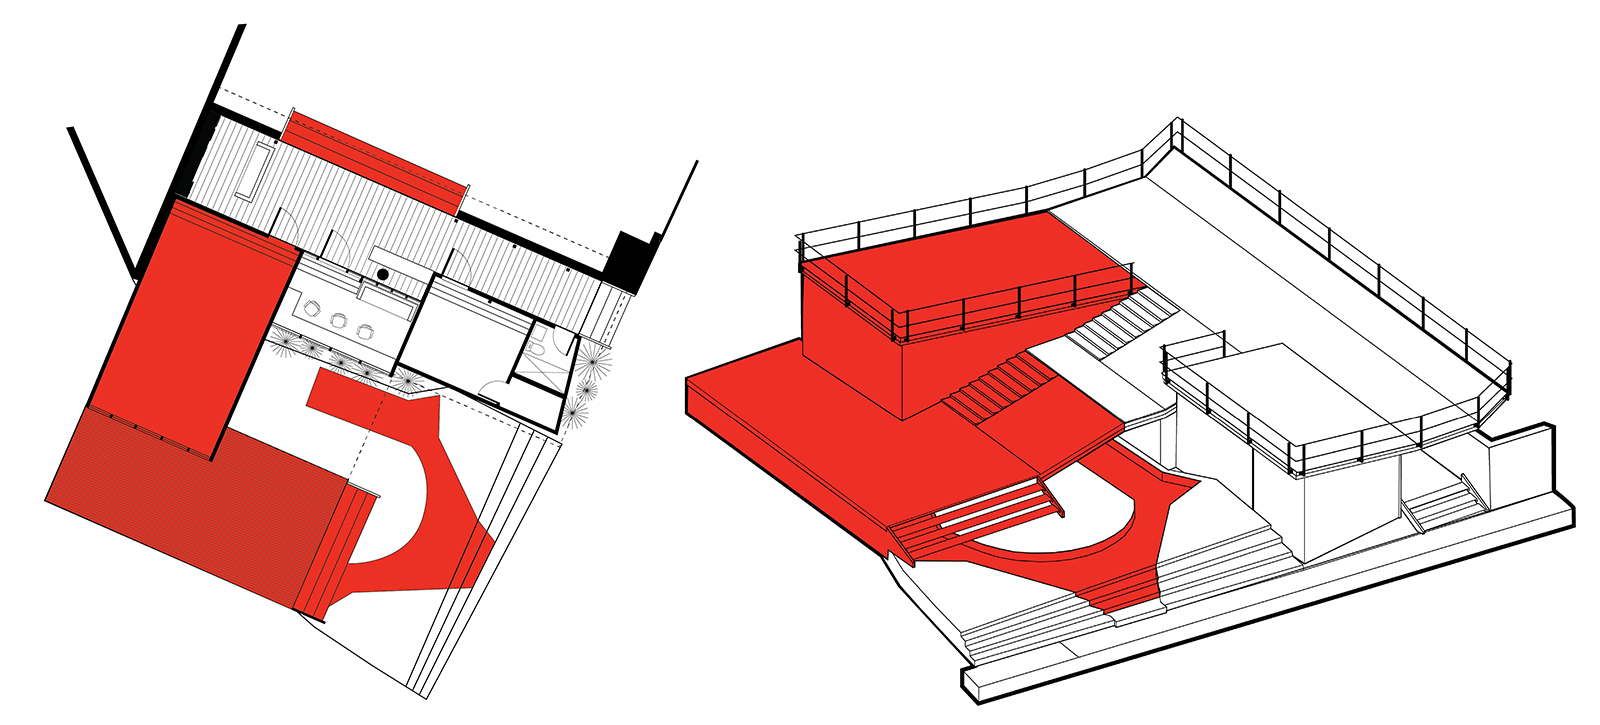 Plan and massing diagrams showing the expansion of the YELE studio public space deck during the final phase of construction